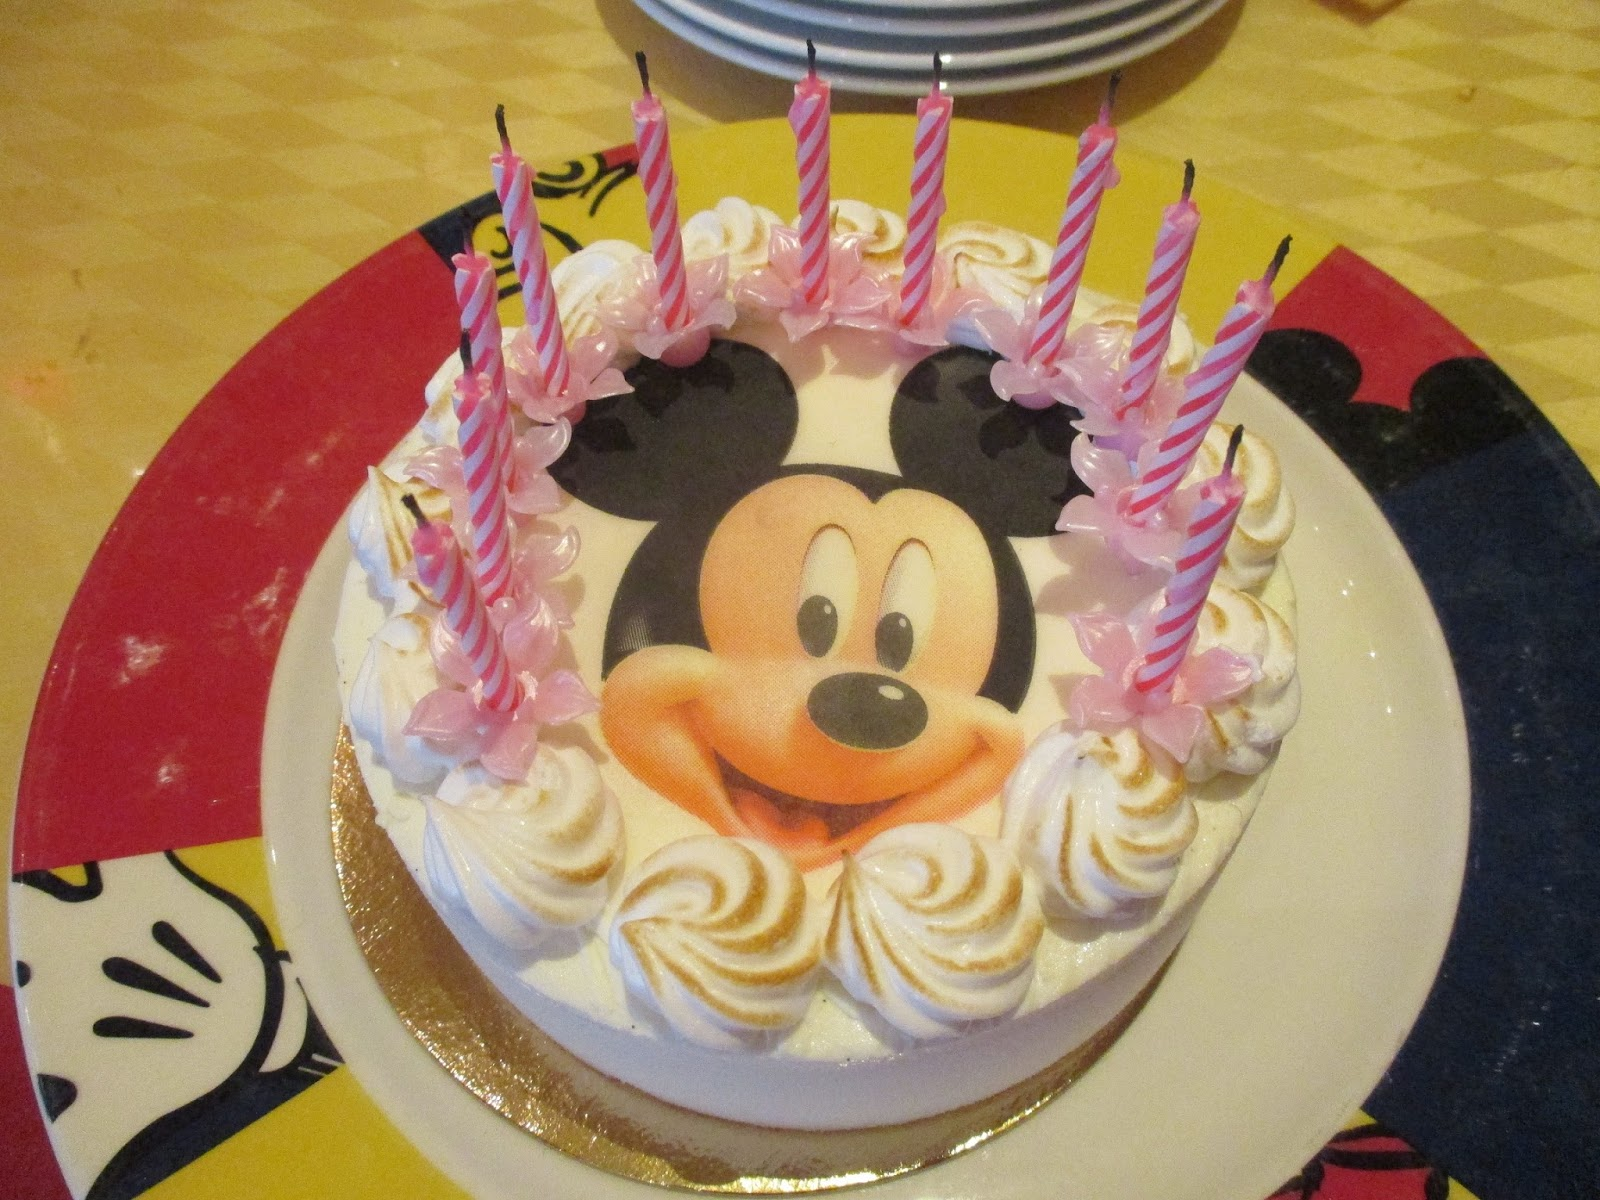 Wordless Wednesday Birthdays added pixie dust